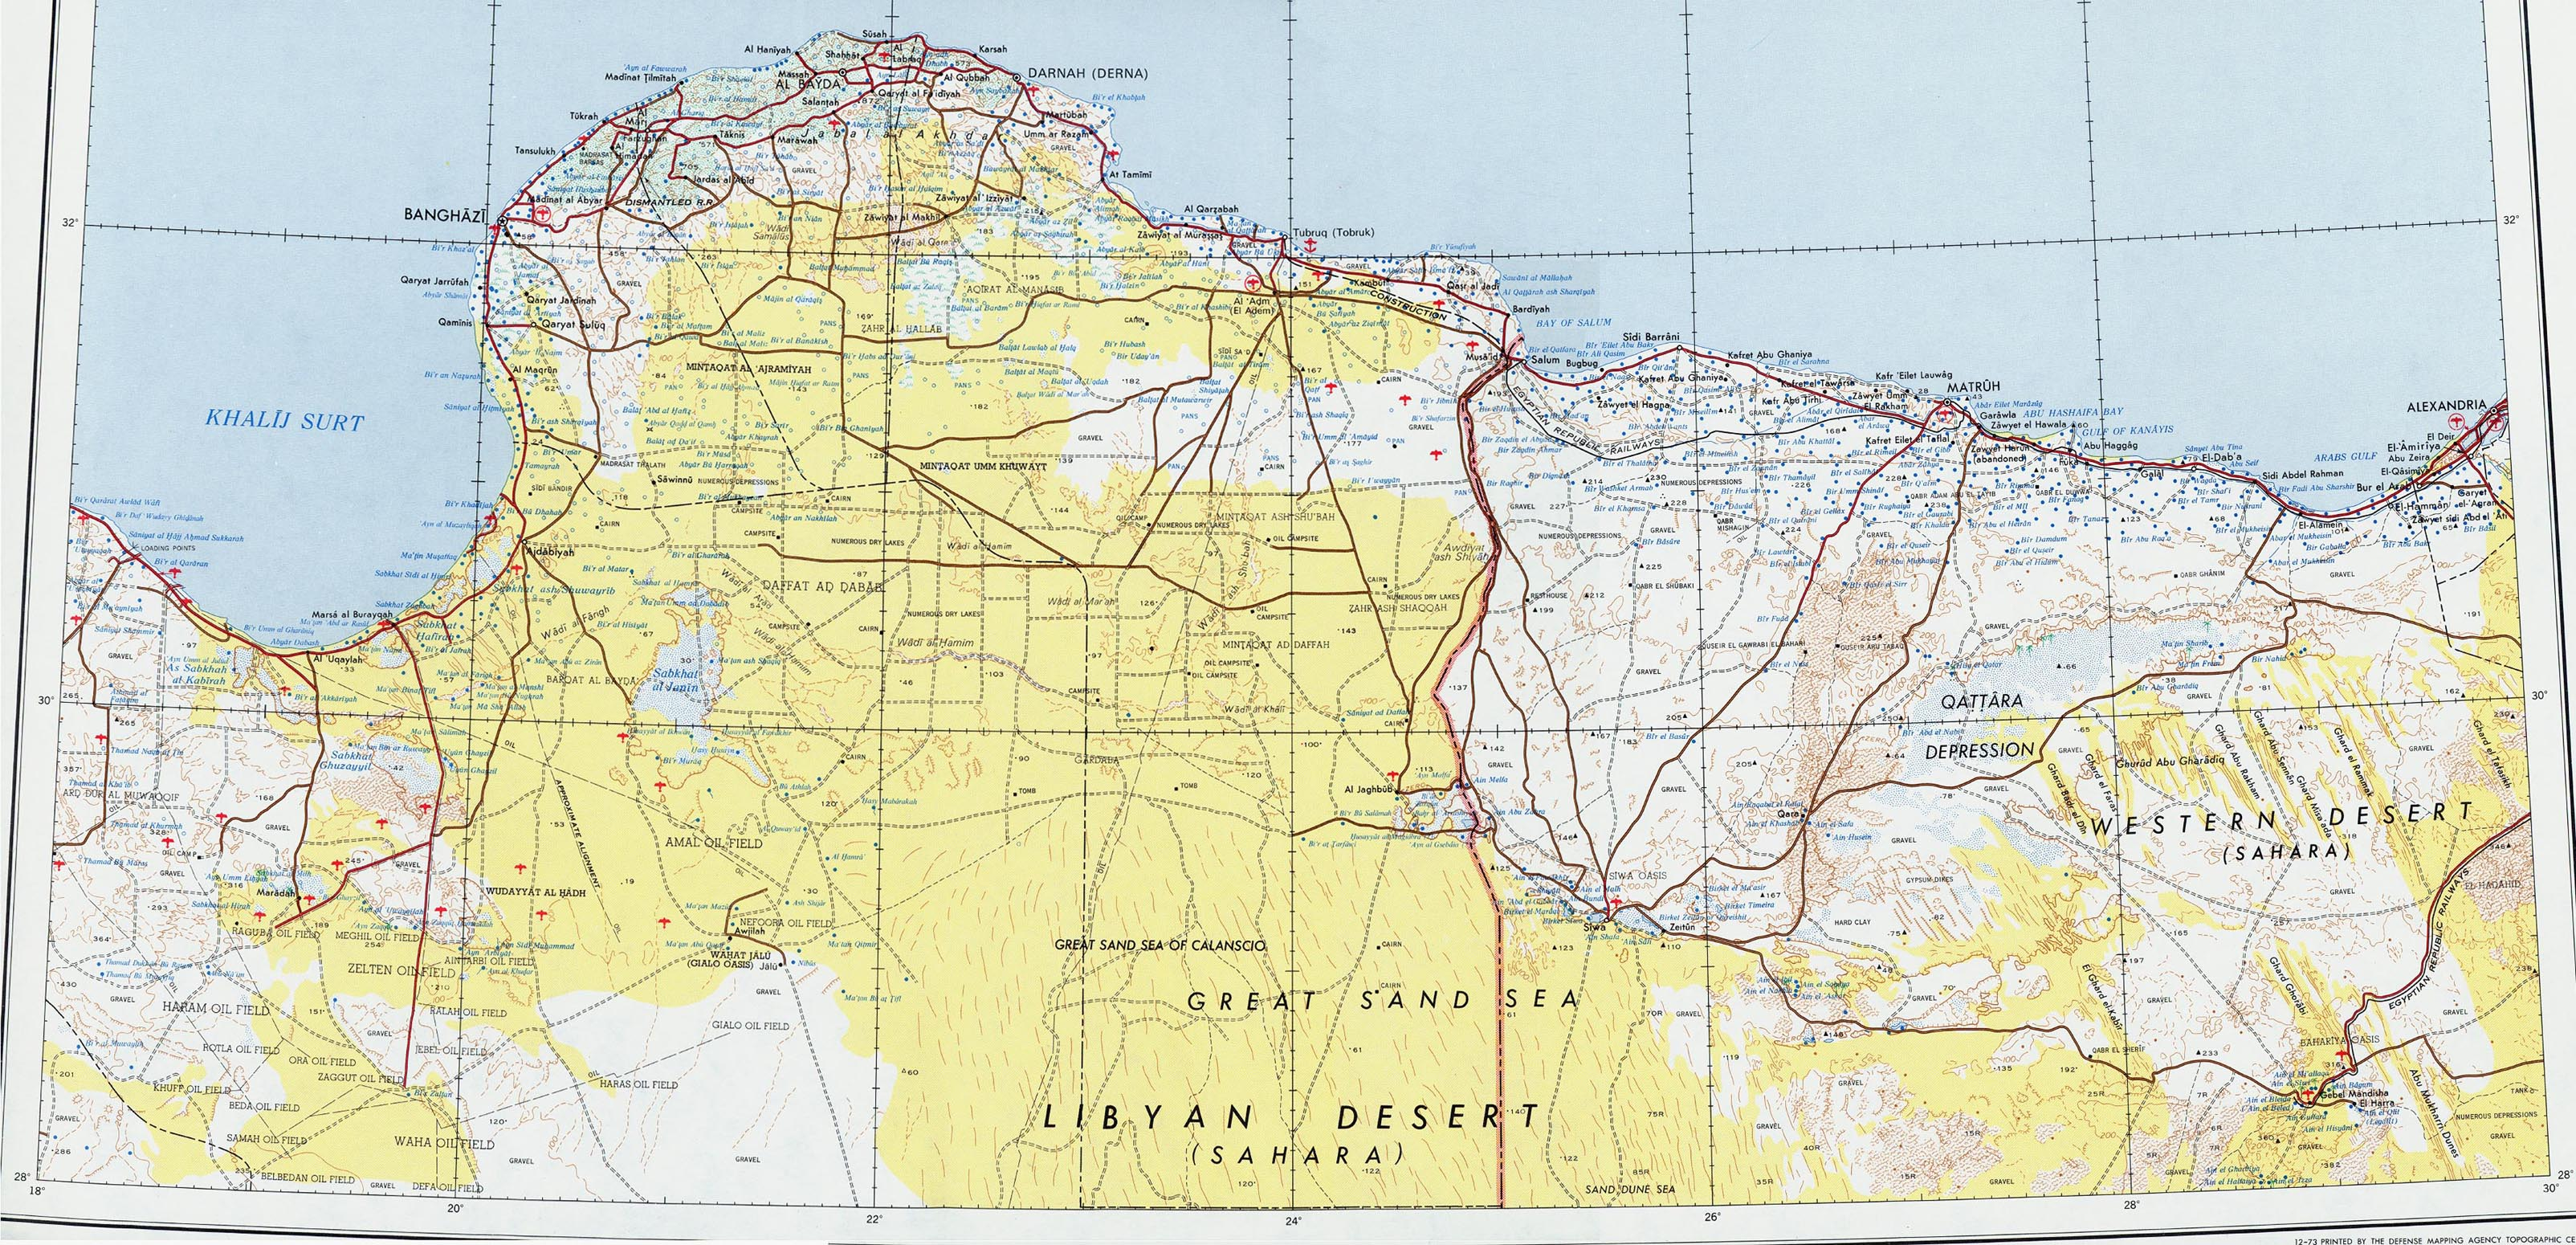 Northeast Libya Topographic Map